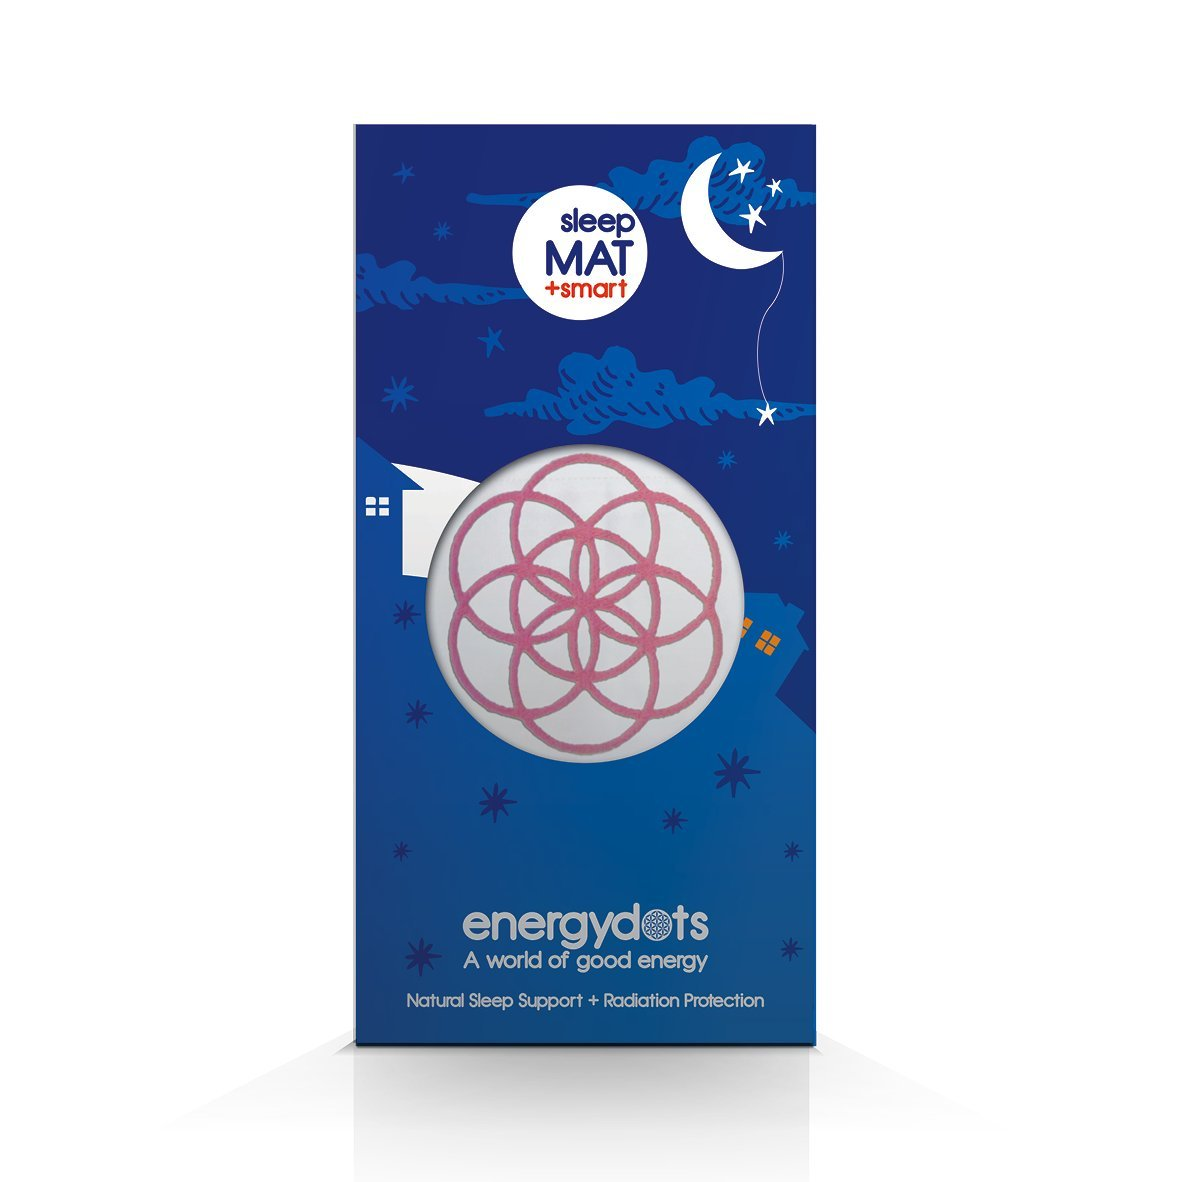 energydots sleepMAT + free smartDOT, organic mat with sleepDOT naturally supports deep nurturing sleep, and a powerful EMF/radiation protection DOT for cell phones, wireless, baby monitor, etc. (Pink)